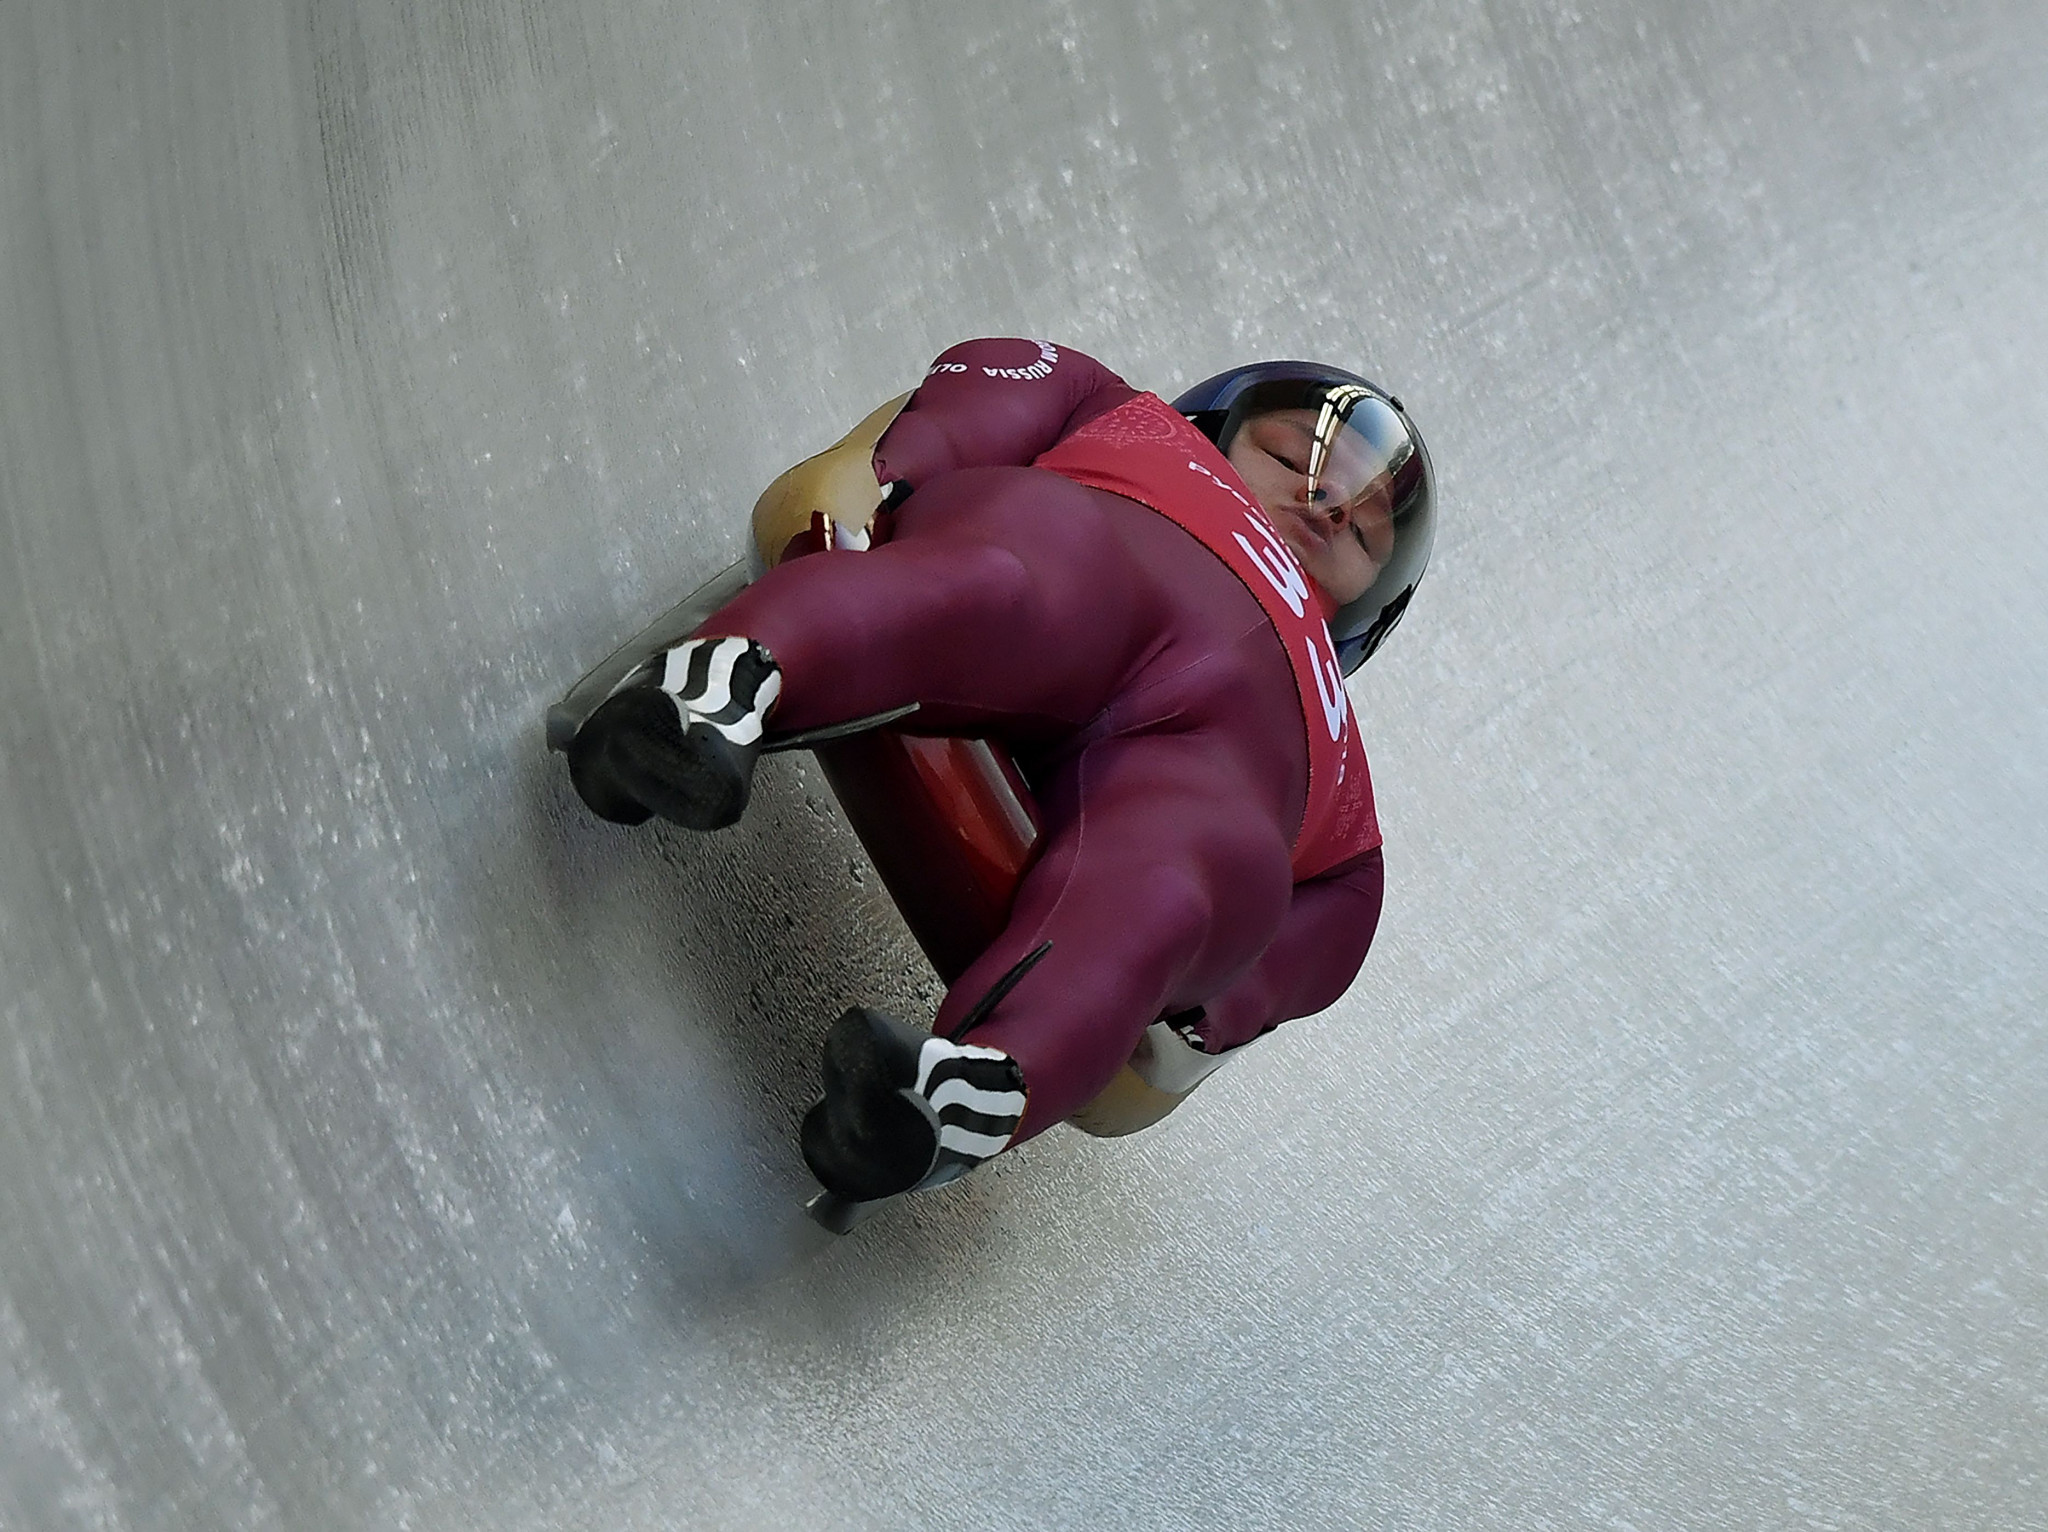 Russian luge team to resume training on June 20